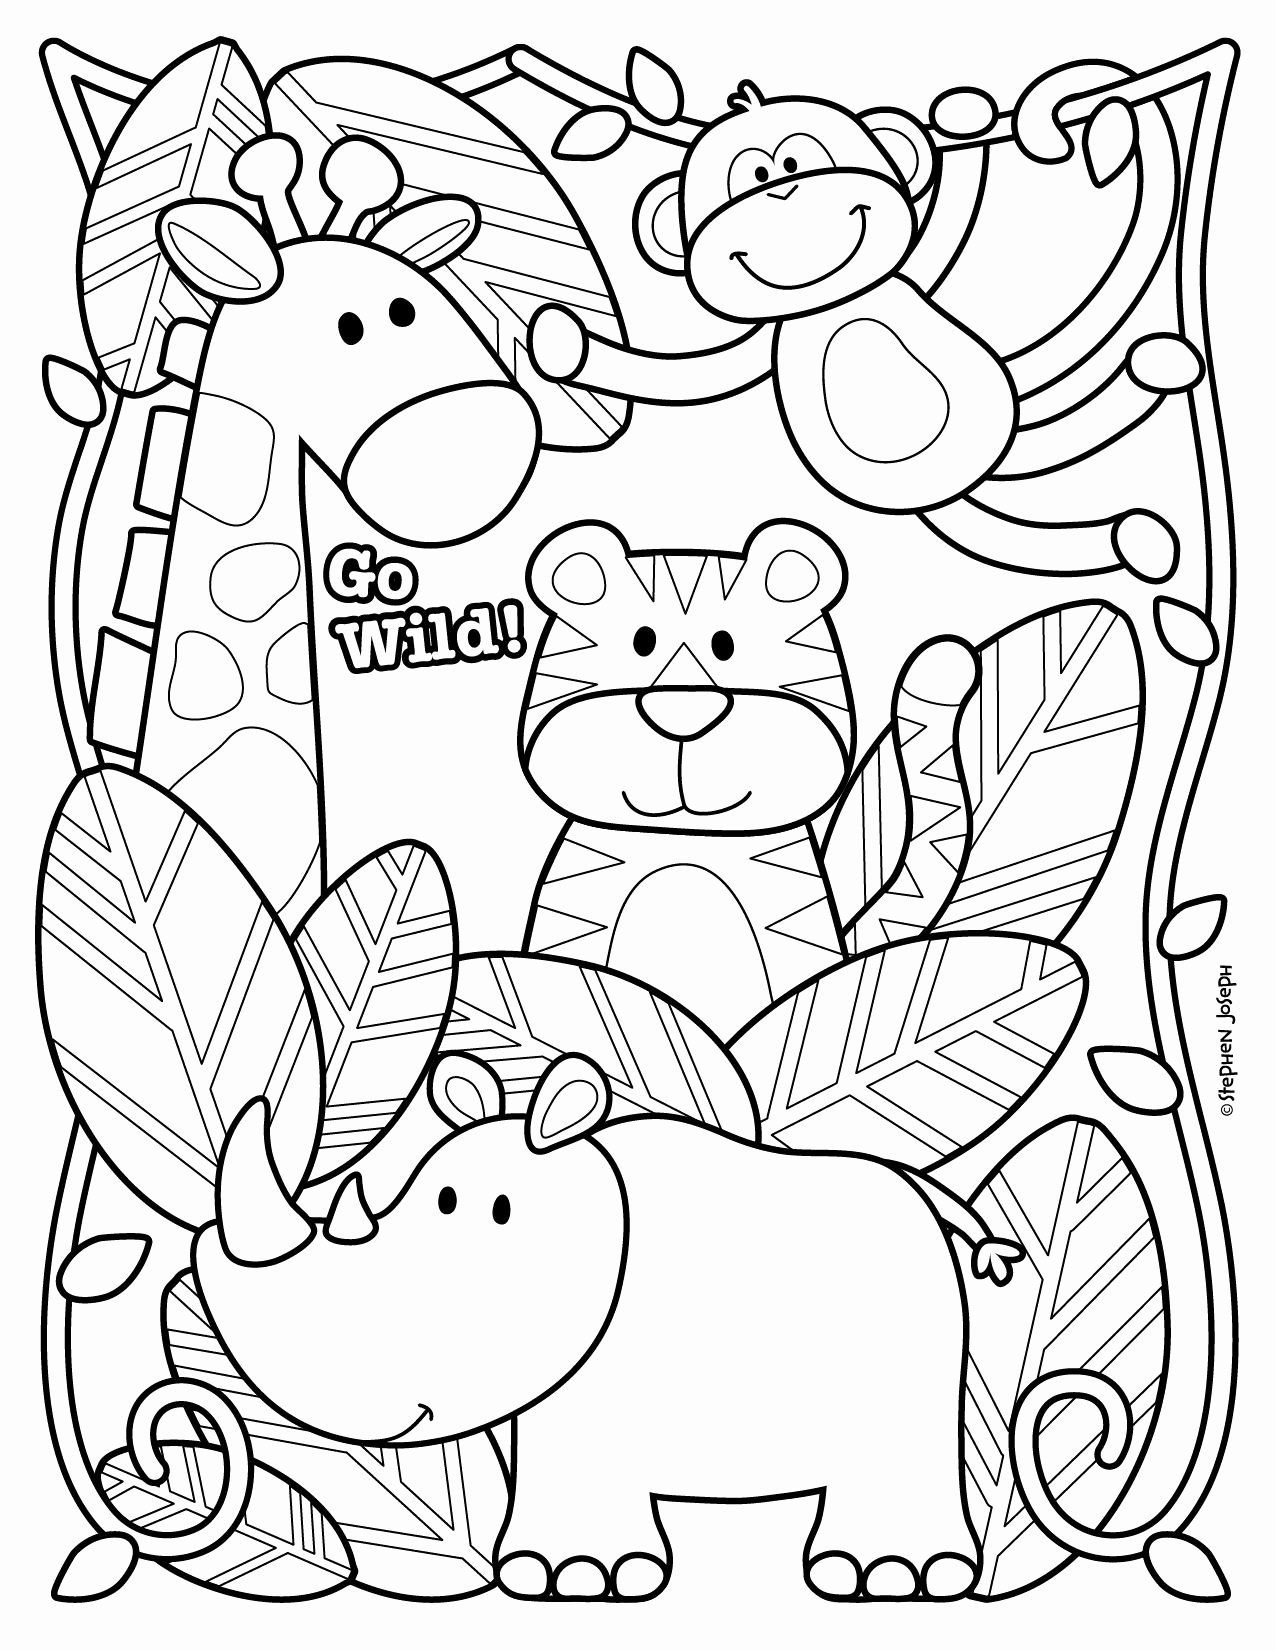 zoo coloring pictures for preschool zoo animal coloring pages elegant get this preschool zoo preschool pictures for coloring zoo